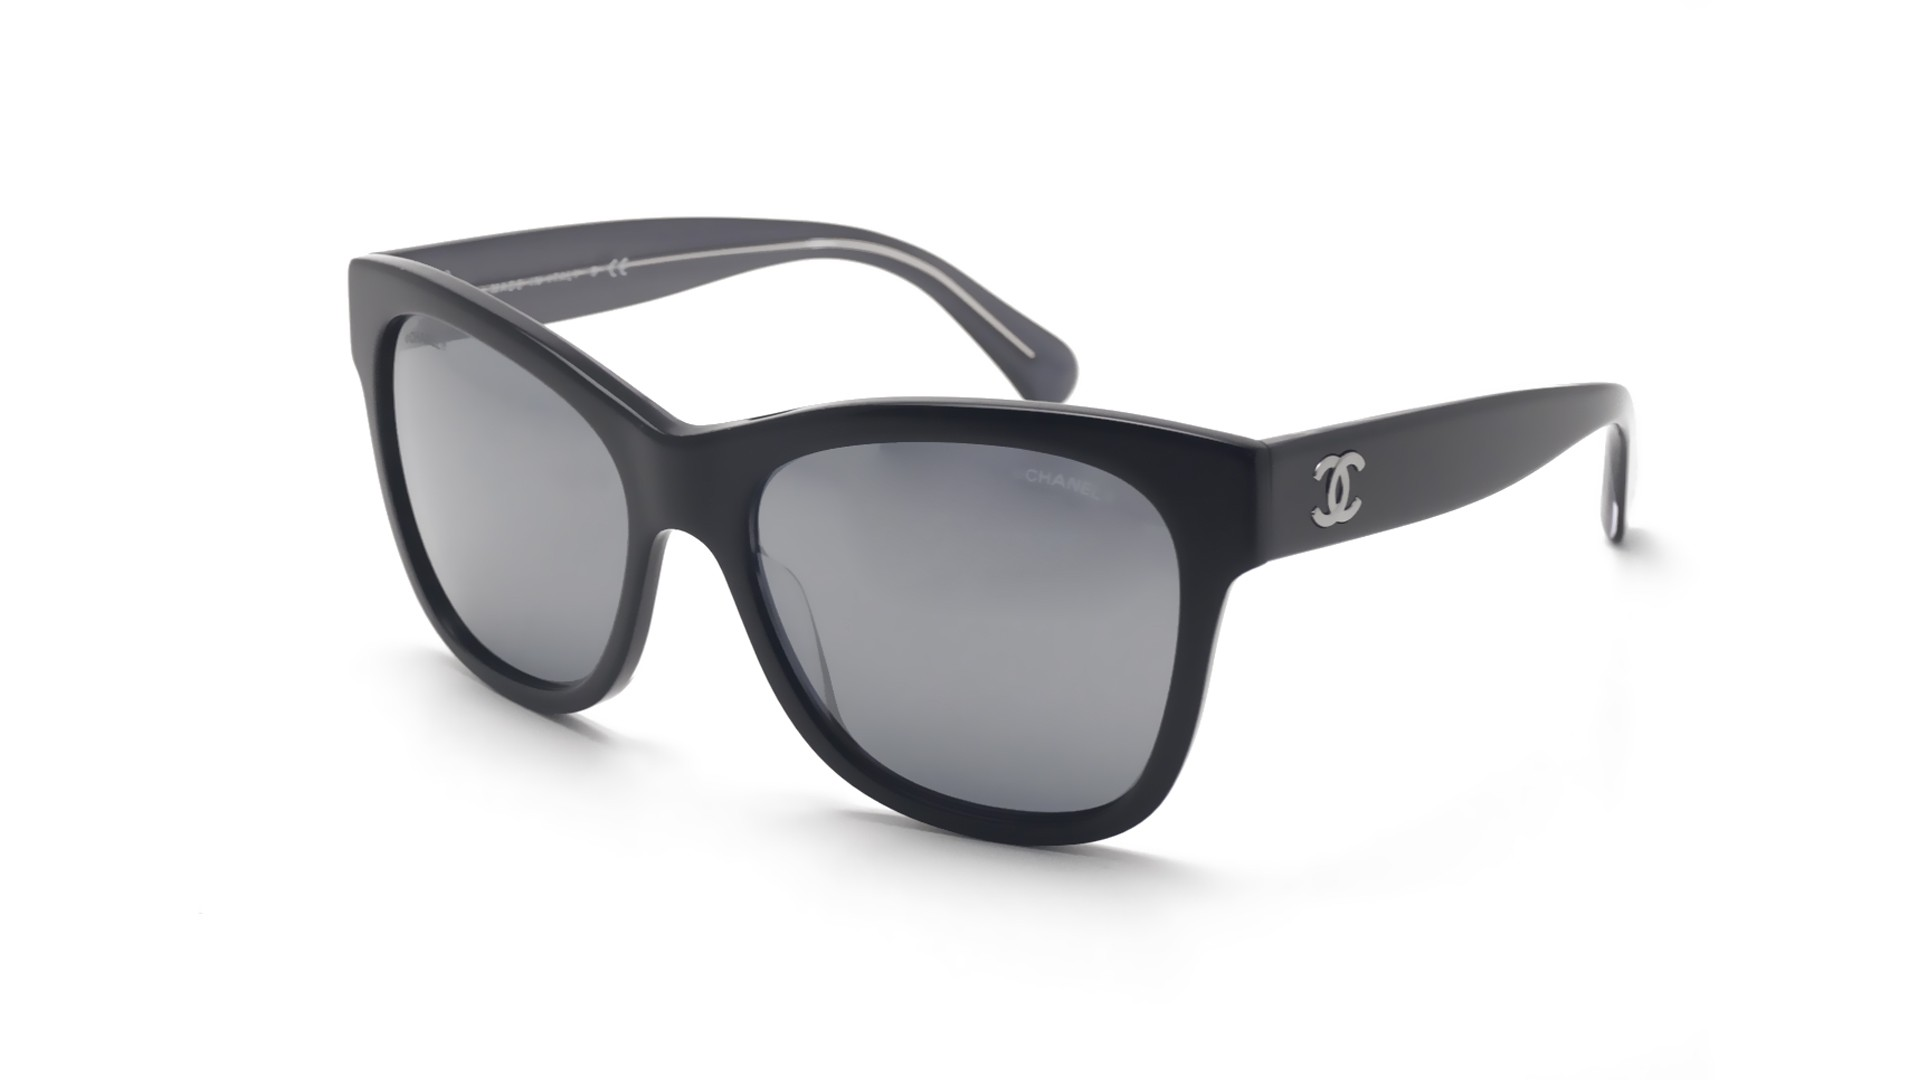 f8bf46eb67 Chanel Square Sunglasses Ch5380 Black